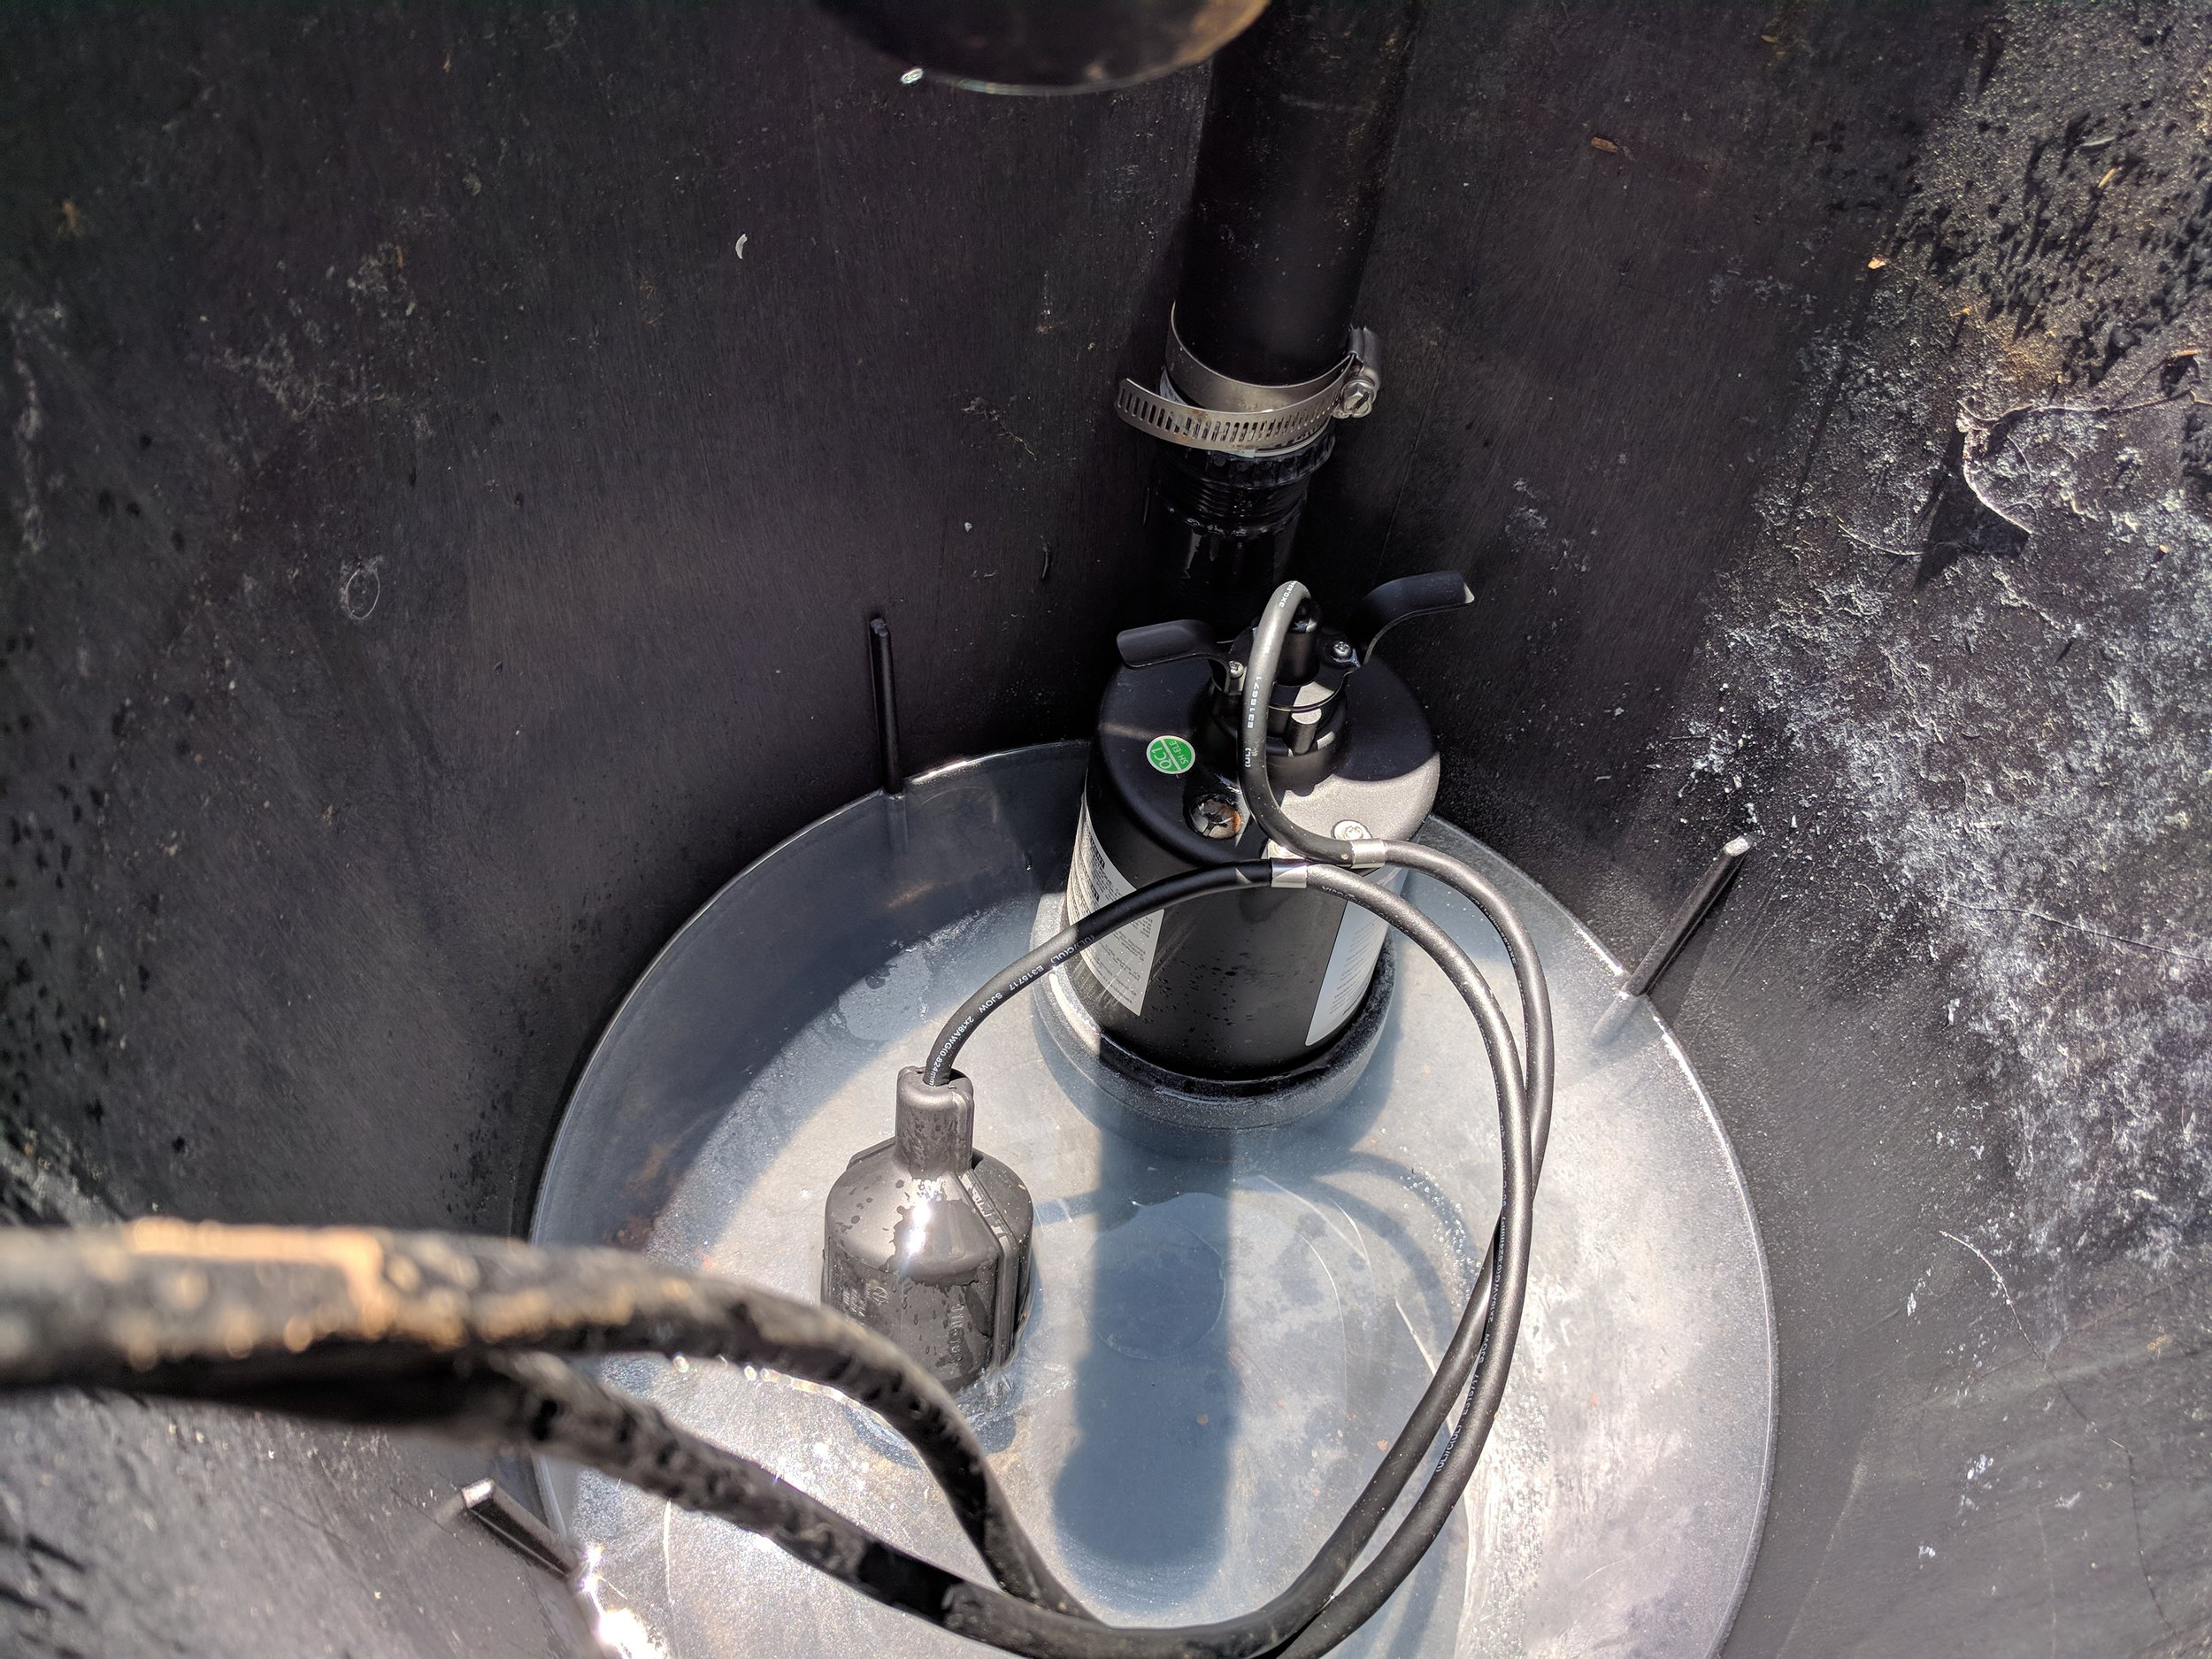 Pump sits at the bottom of the basin